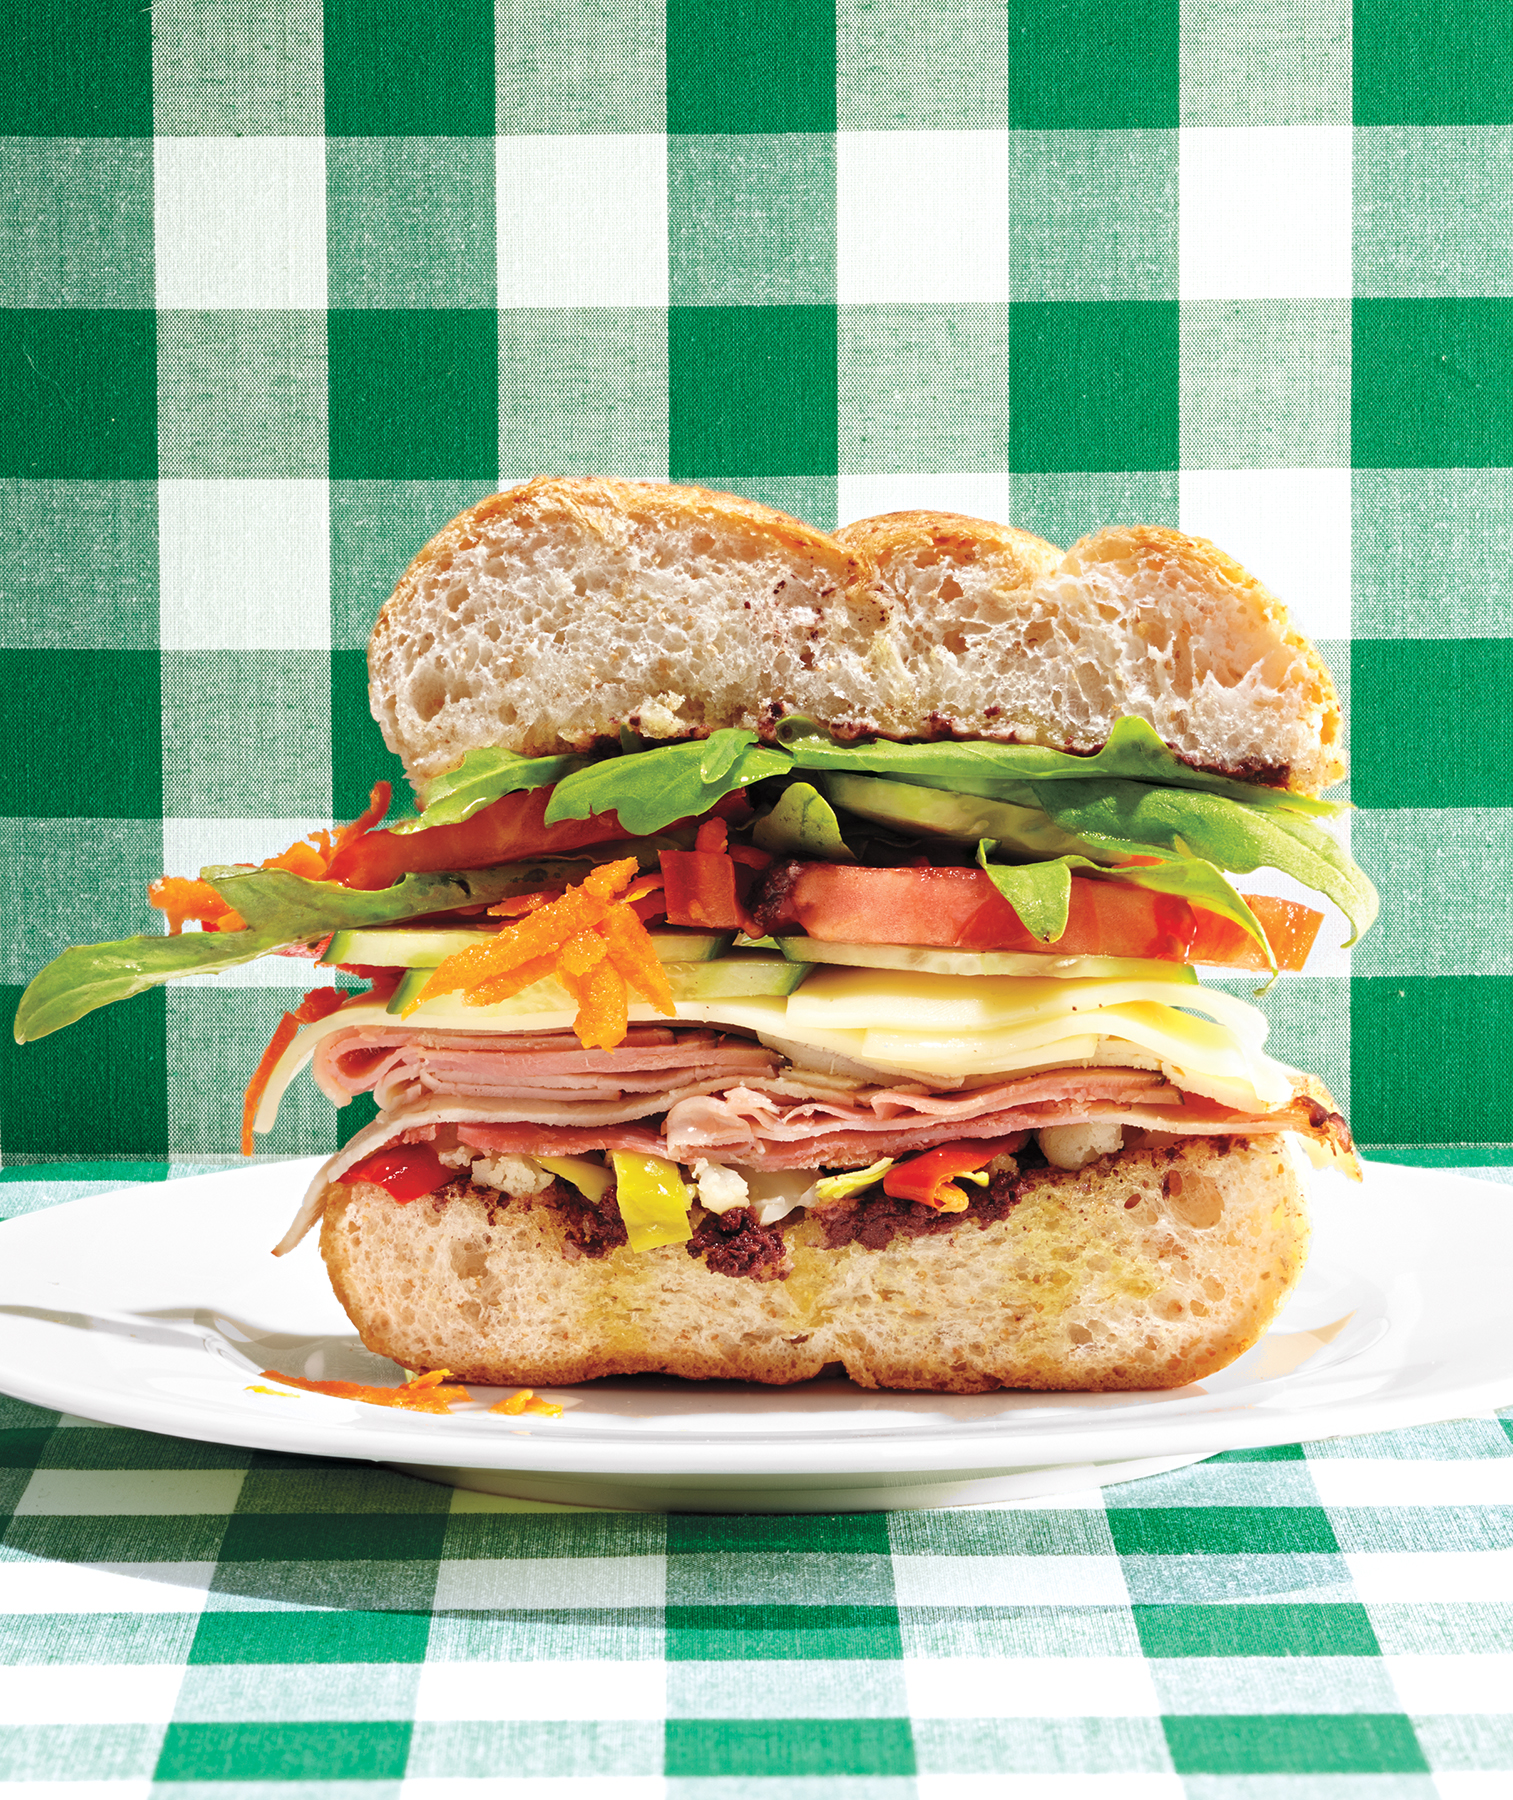 4 Unexpected Ways to Make Your Sandwich So Much Better